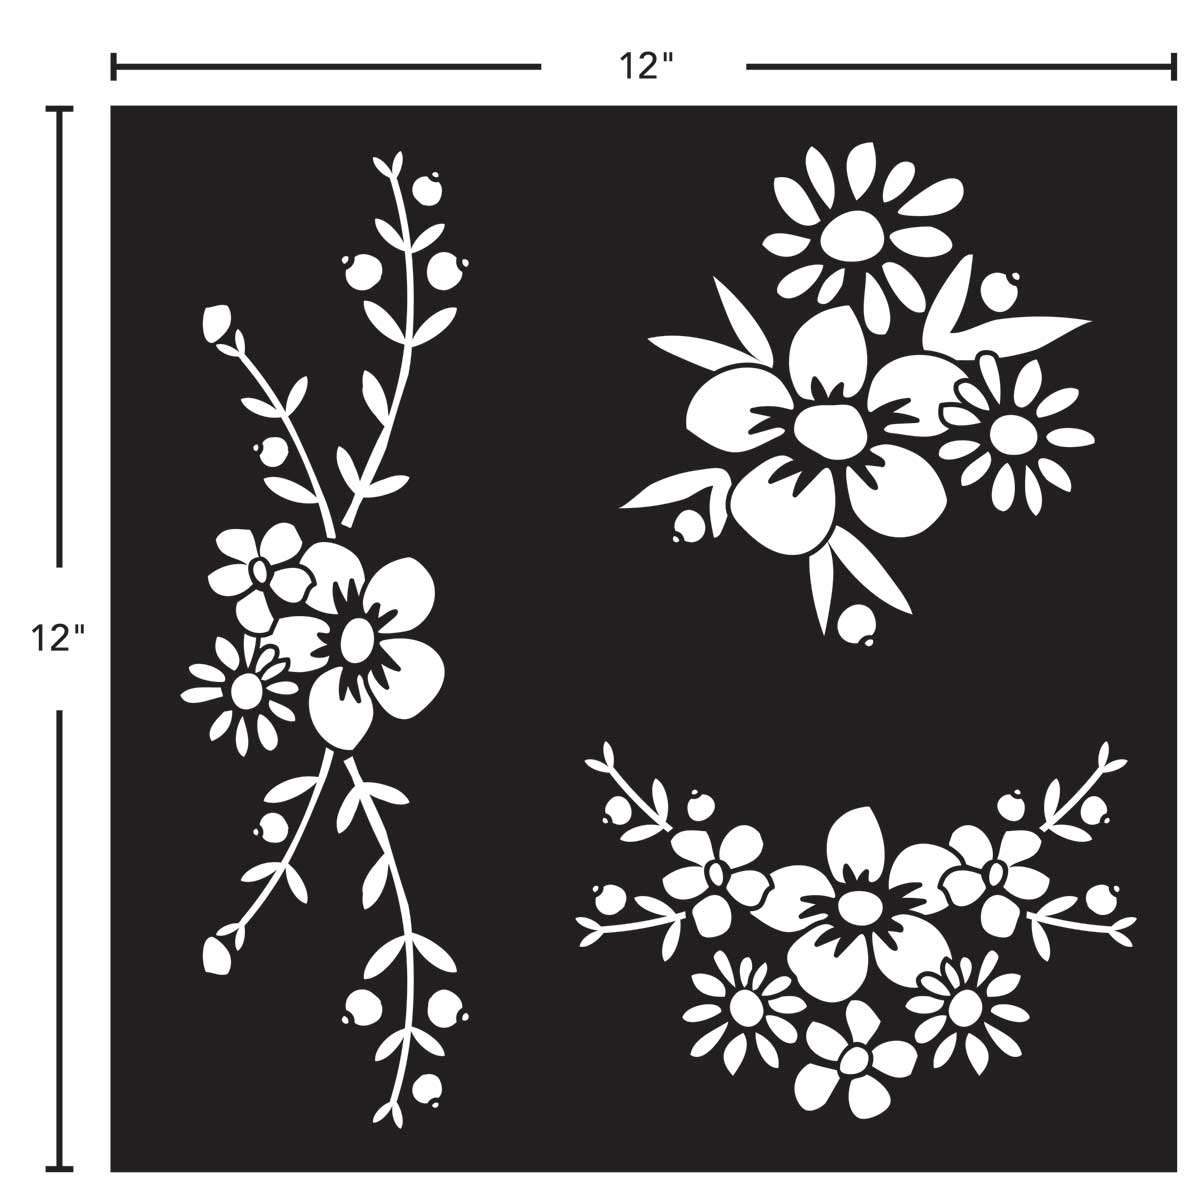 FolkArt ® Painting Stencils - Adhesive Laser - Floral Spray